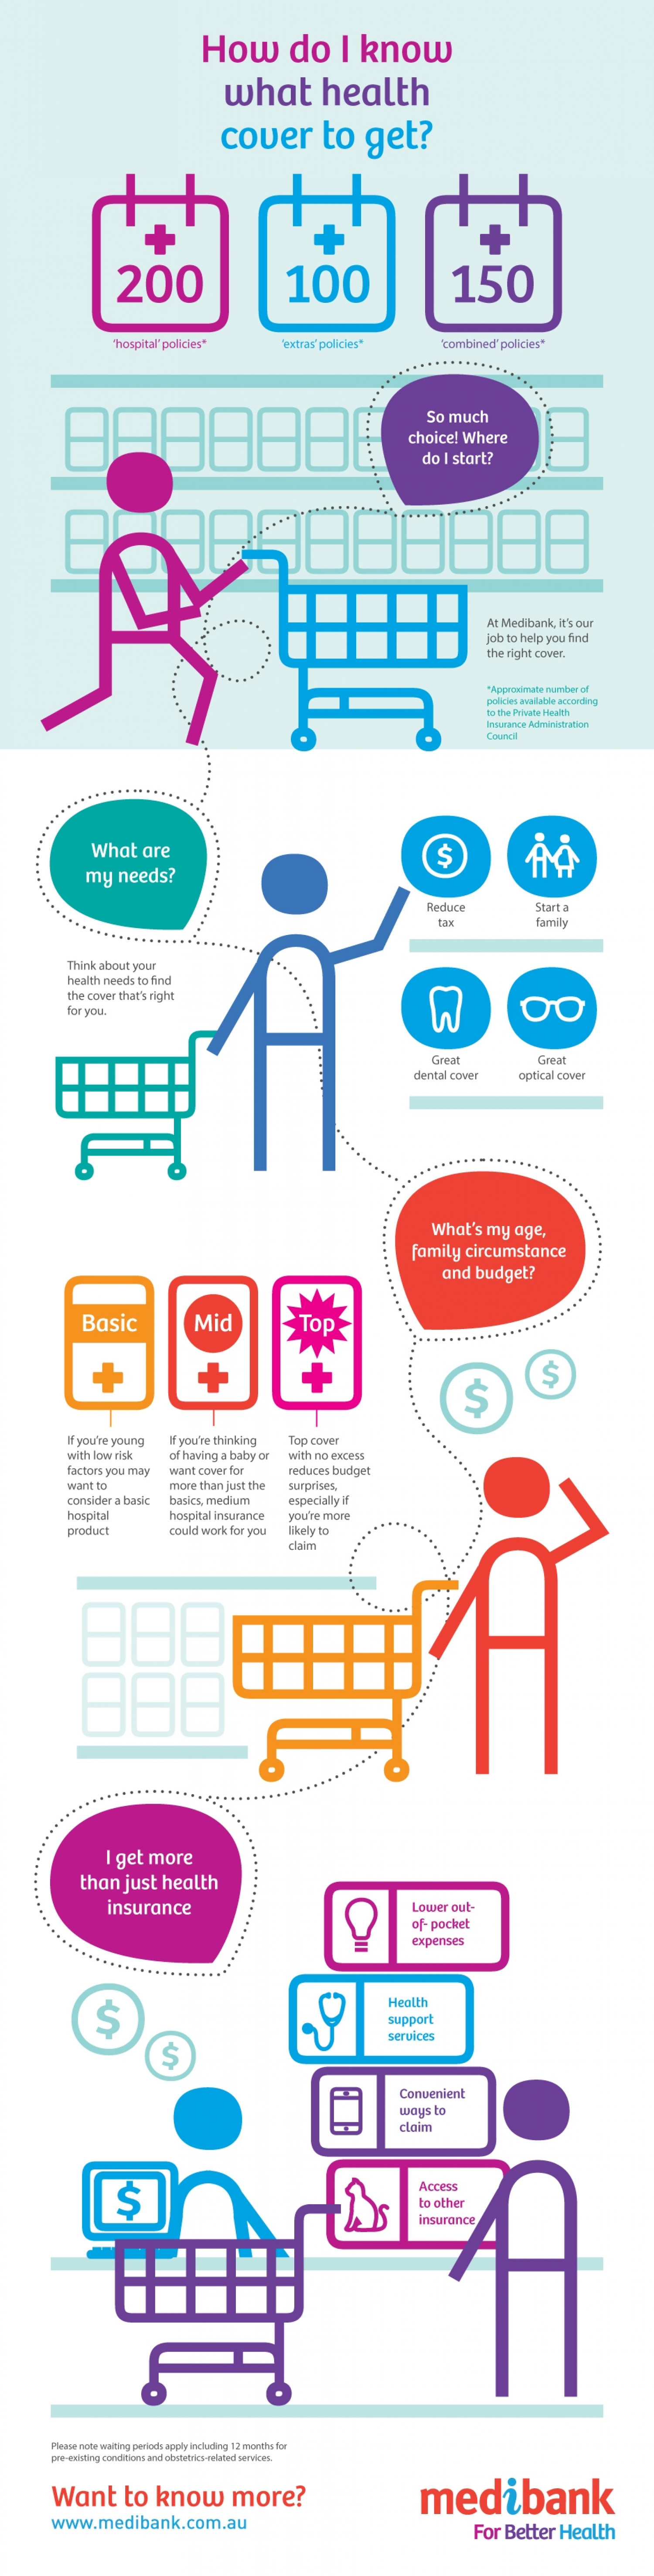 Choosing the right health insurance cover Infographic